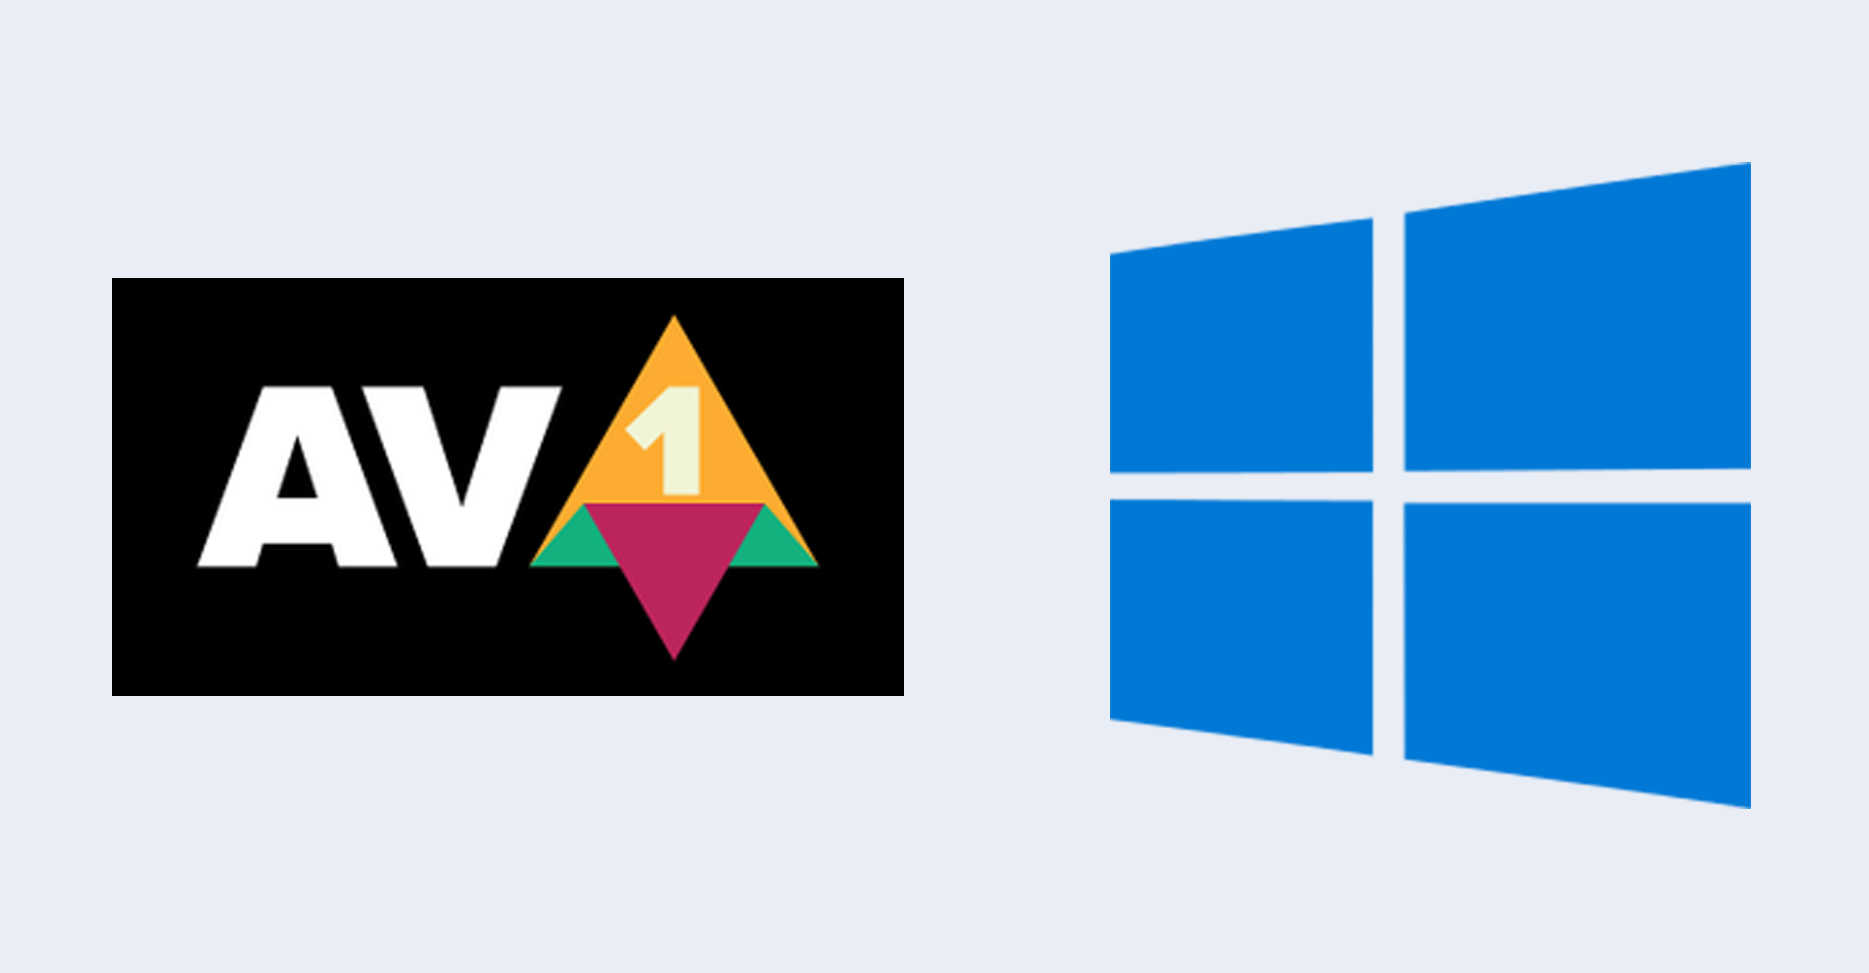 windows 10 av1 kodek